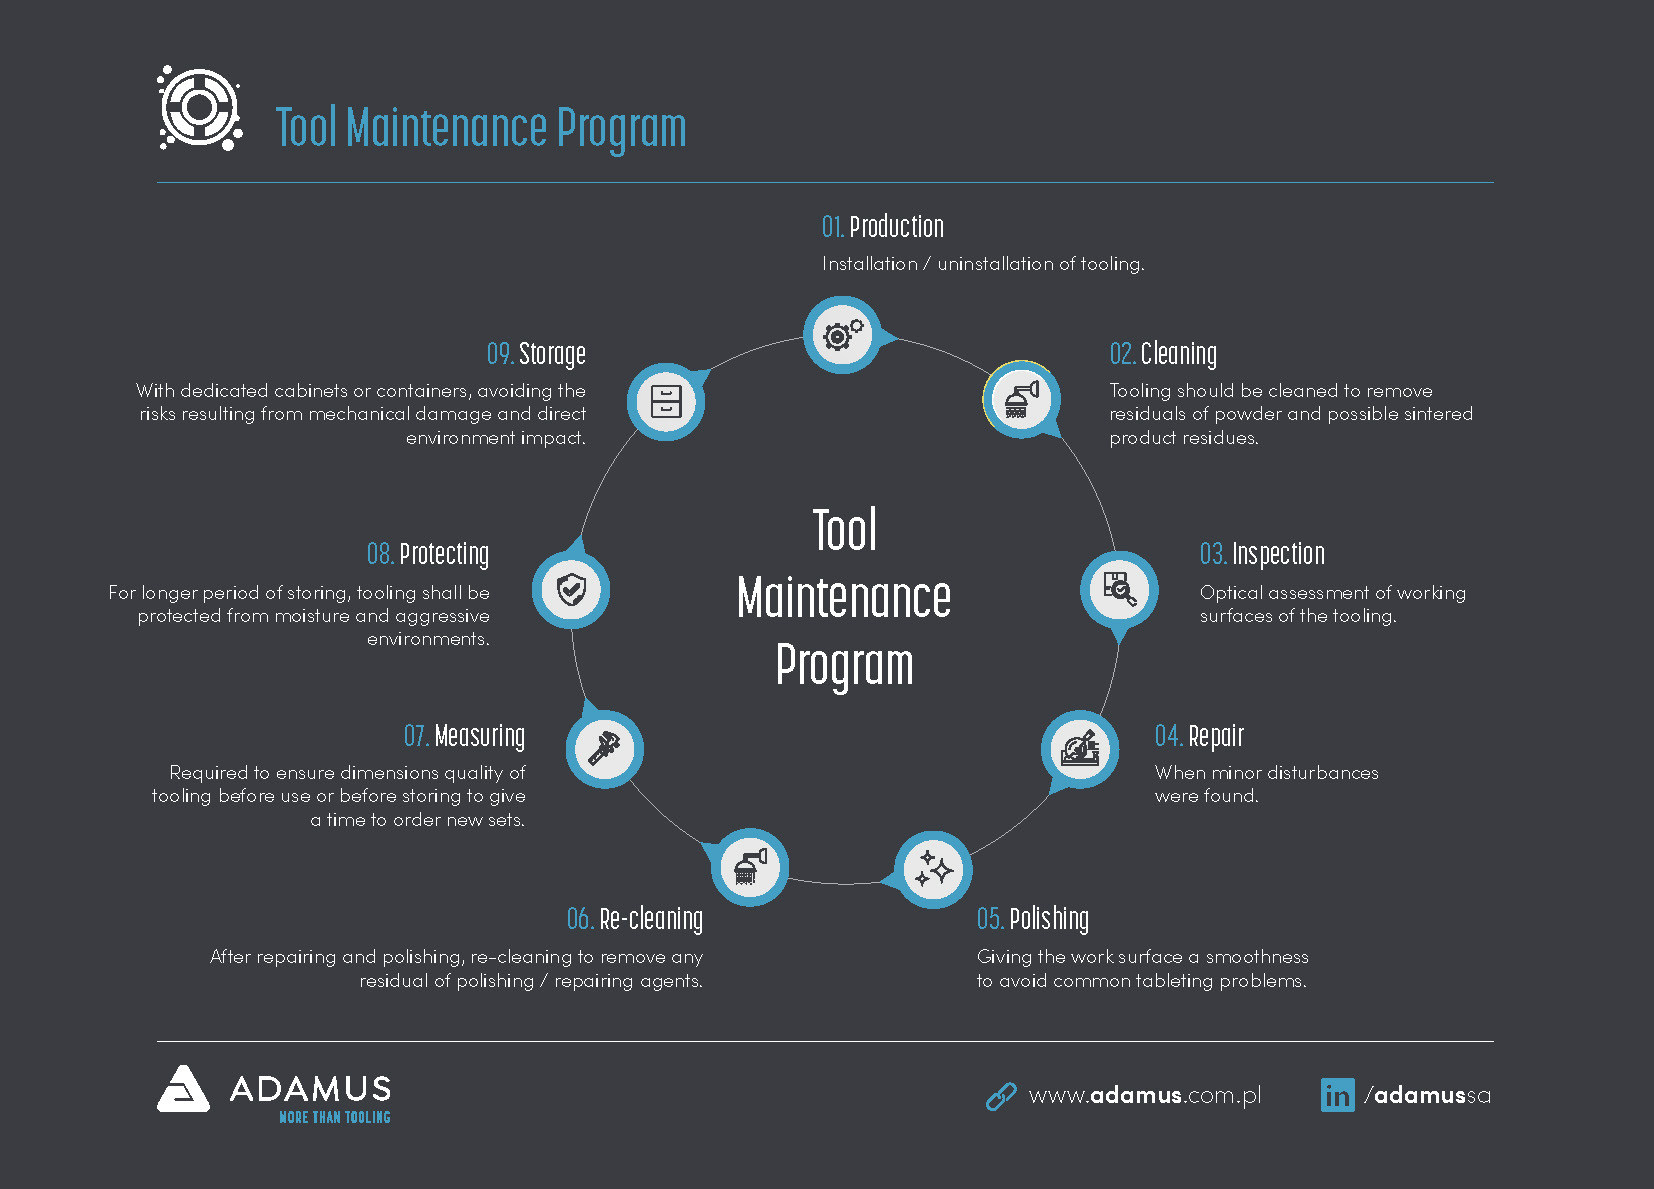 Tool Maintenance Program by Adamus